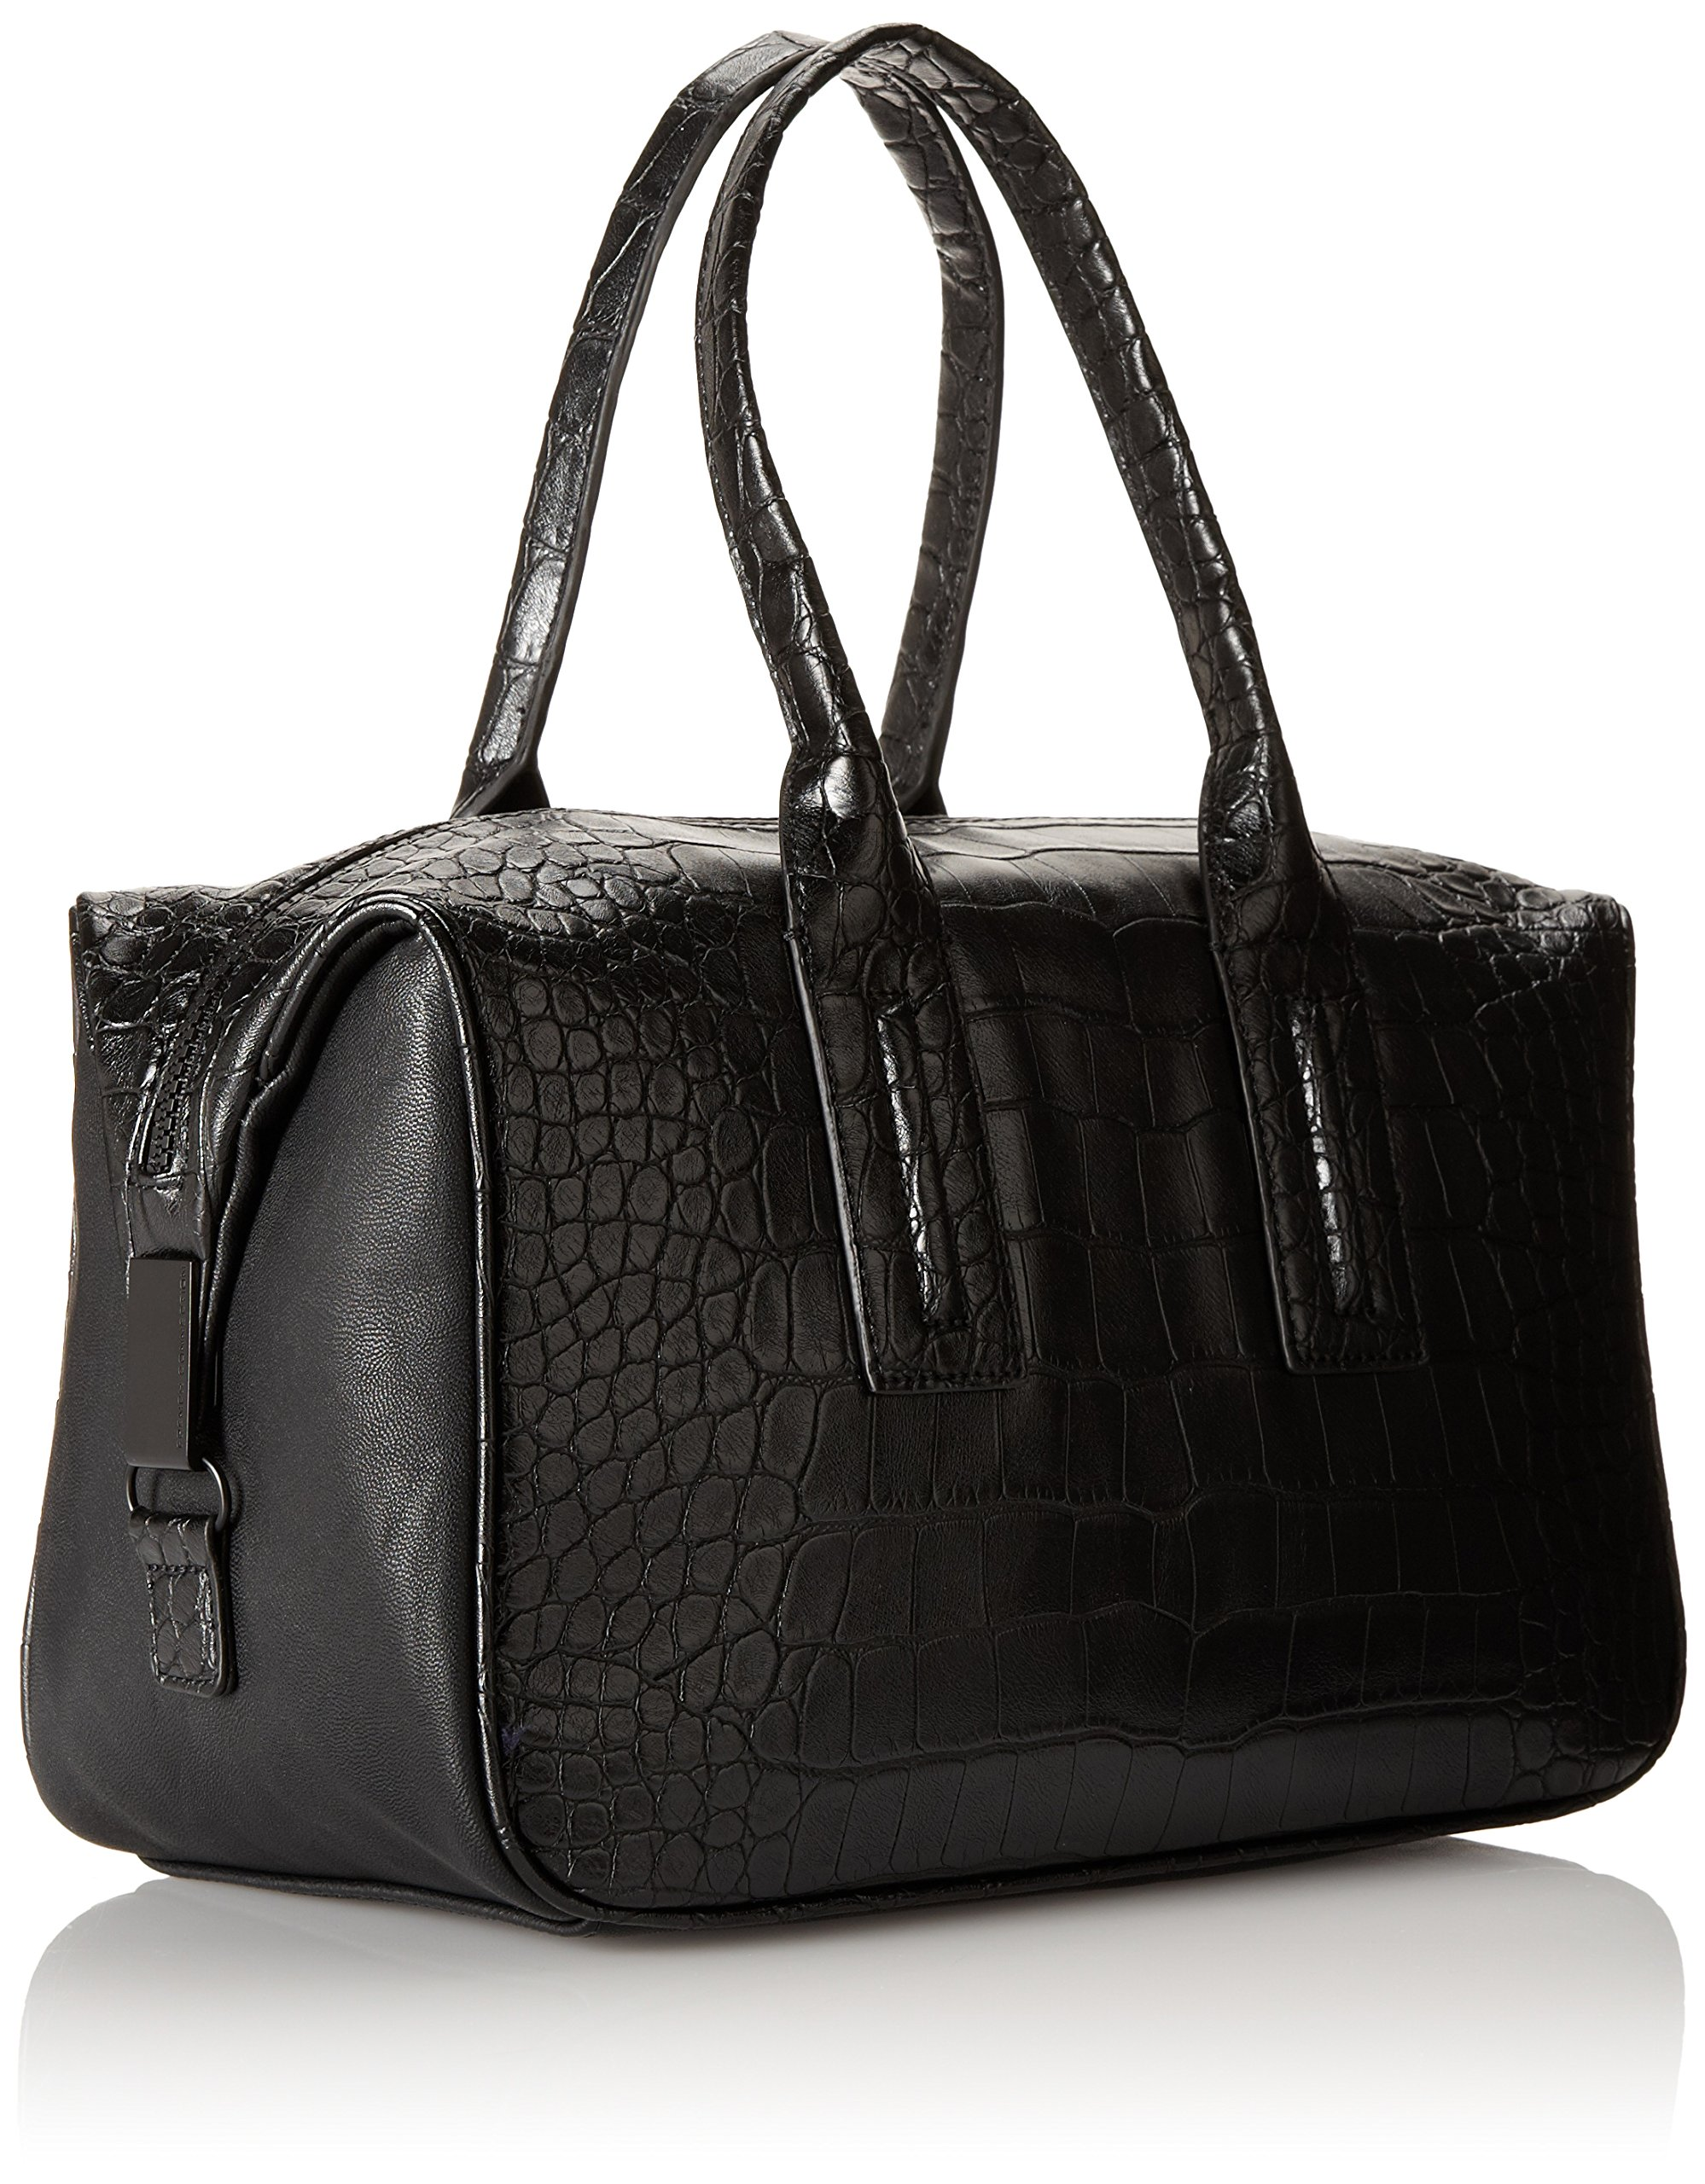 French Connection Shes A Lady Satchel,Black Crocodile,One Size by French Connection (Image #2)